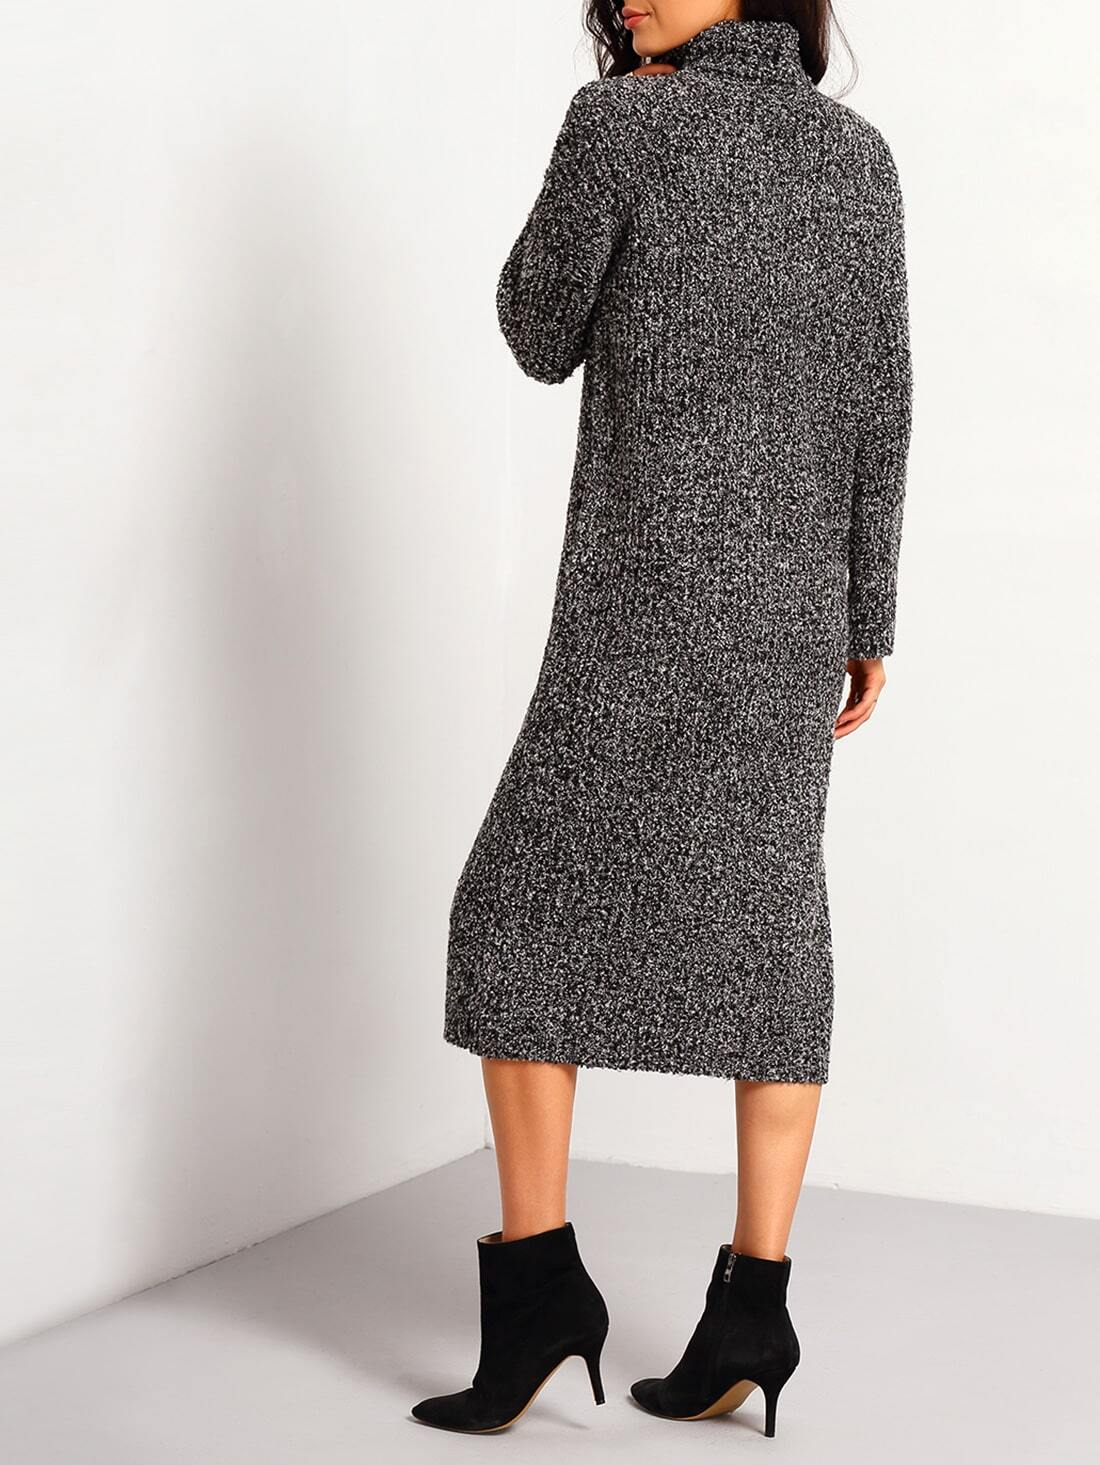 Sweater Dresses. invalid category id. Sweater Dresses. EFINNY Fashion Party Women Winter Black Casual Long Sleeve Bodycon Knitted Sweater Jumper Dress. Product Image. Price $ Women Casual Sweater Dress Long Sleeve Slim Knit Sweater Mini Elastic Dress CDICT. Clearance. Product Image. Price $ 25 - $ Product Title.